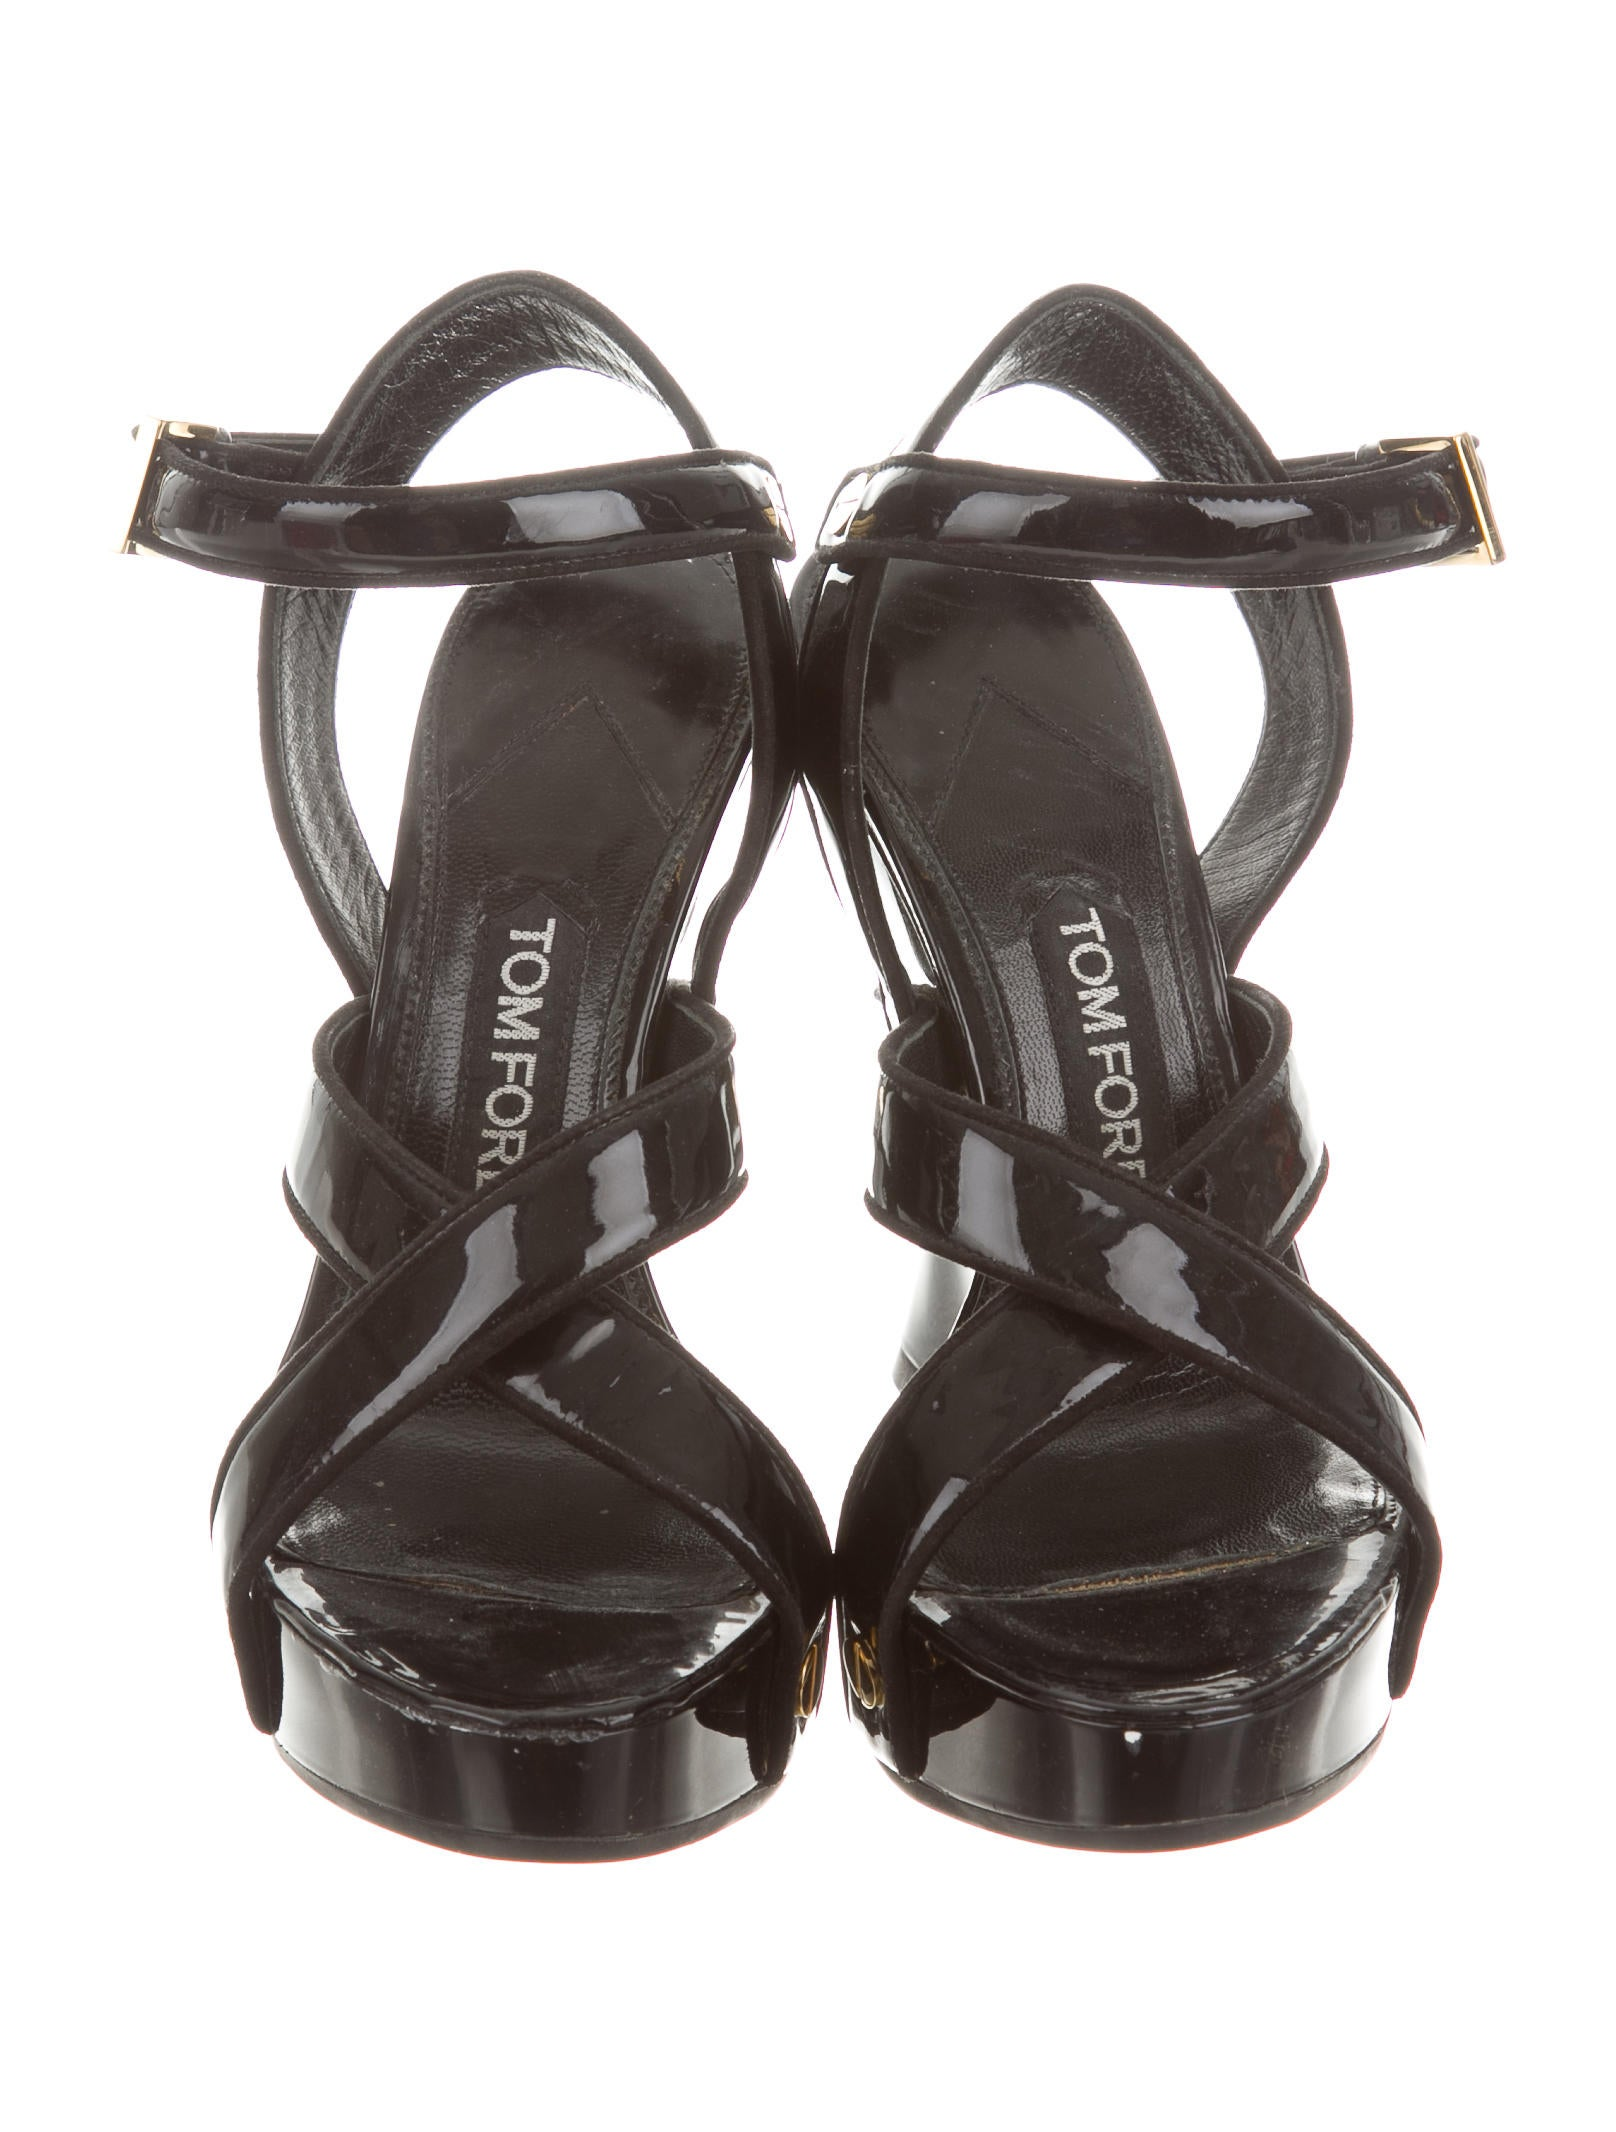 tom ford patent leather wedges shoes tom30196 the. Black Bedroom Furniture Sets. Home Design Ideas